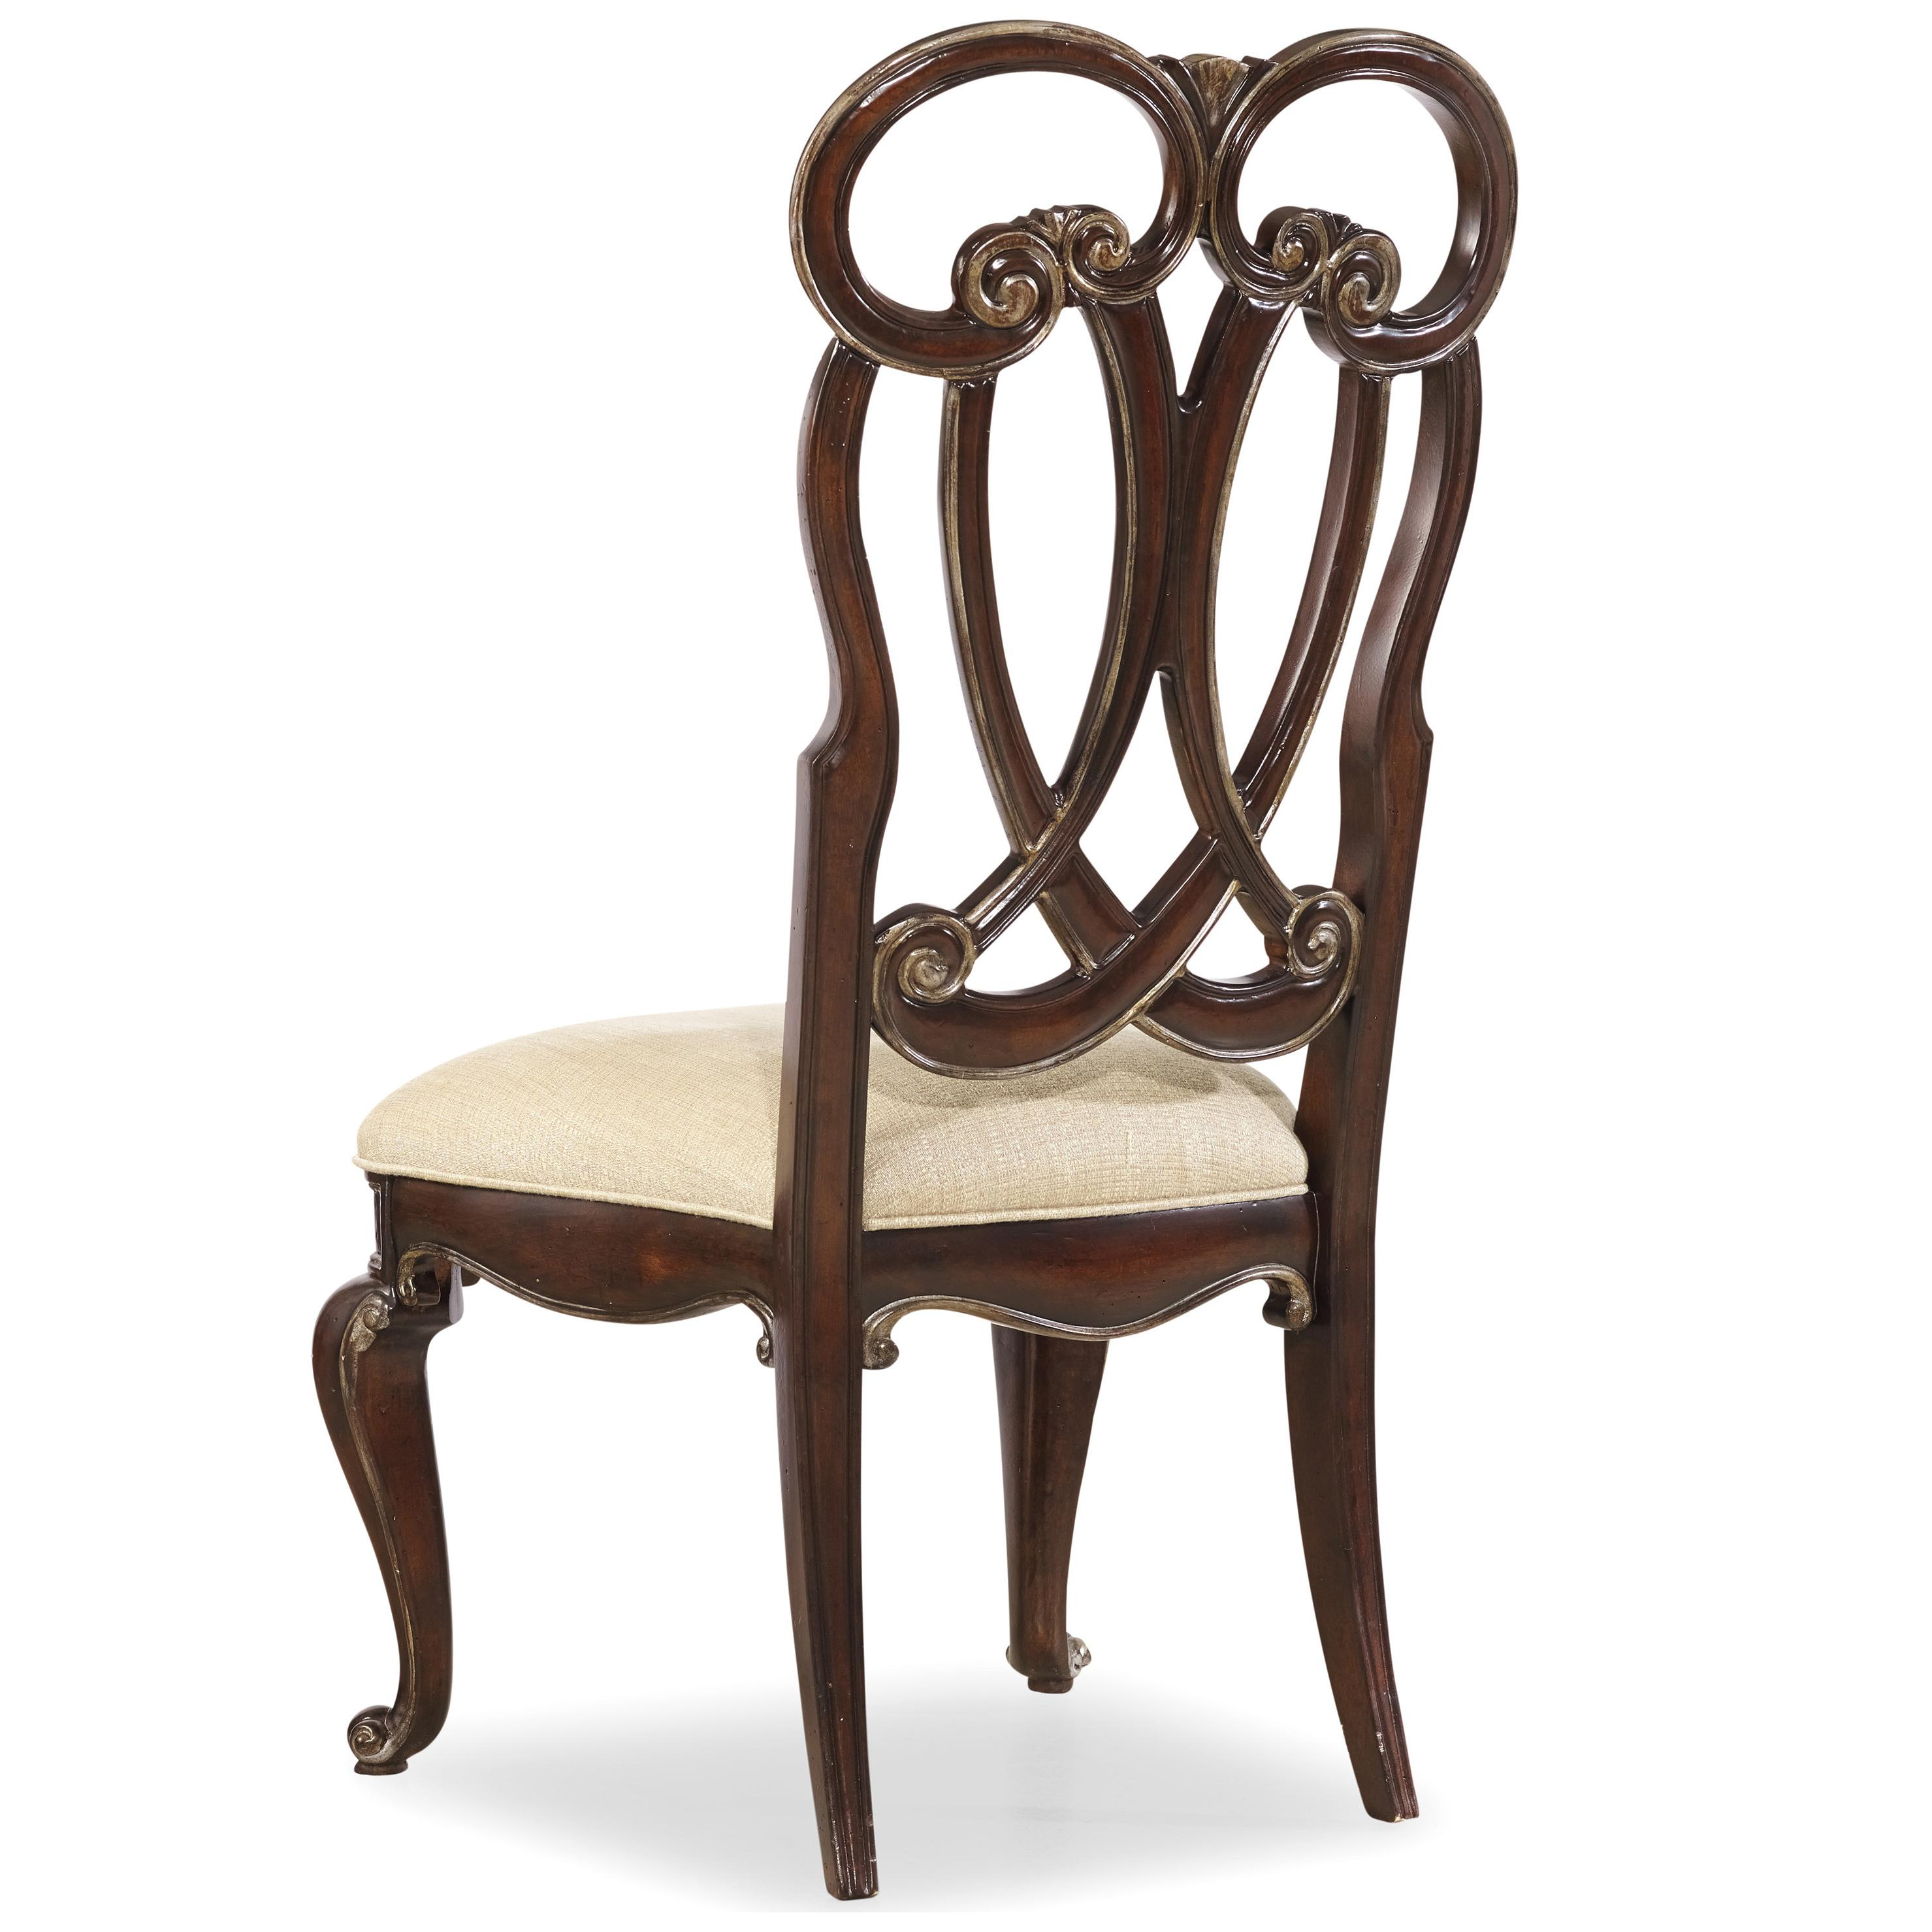 Hamilton Home Grand Palais Splat Back Side Chair - Item Number: 5272-75410